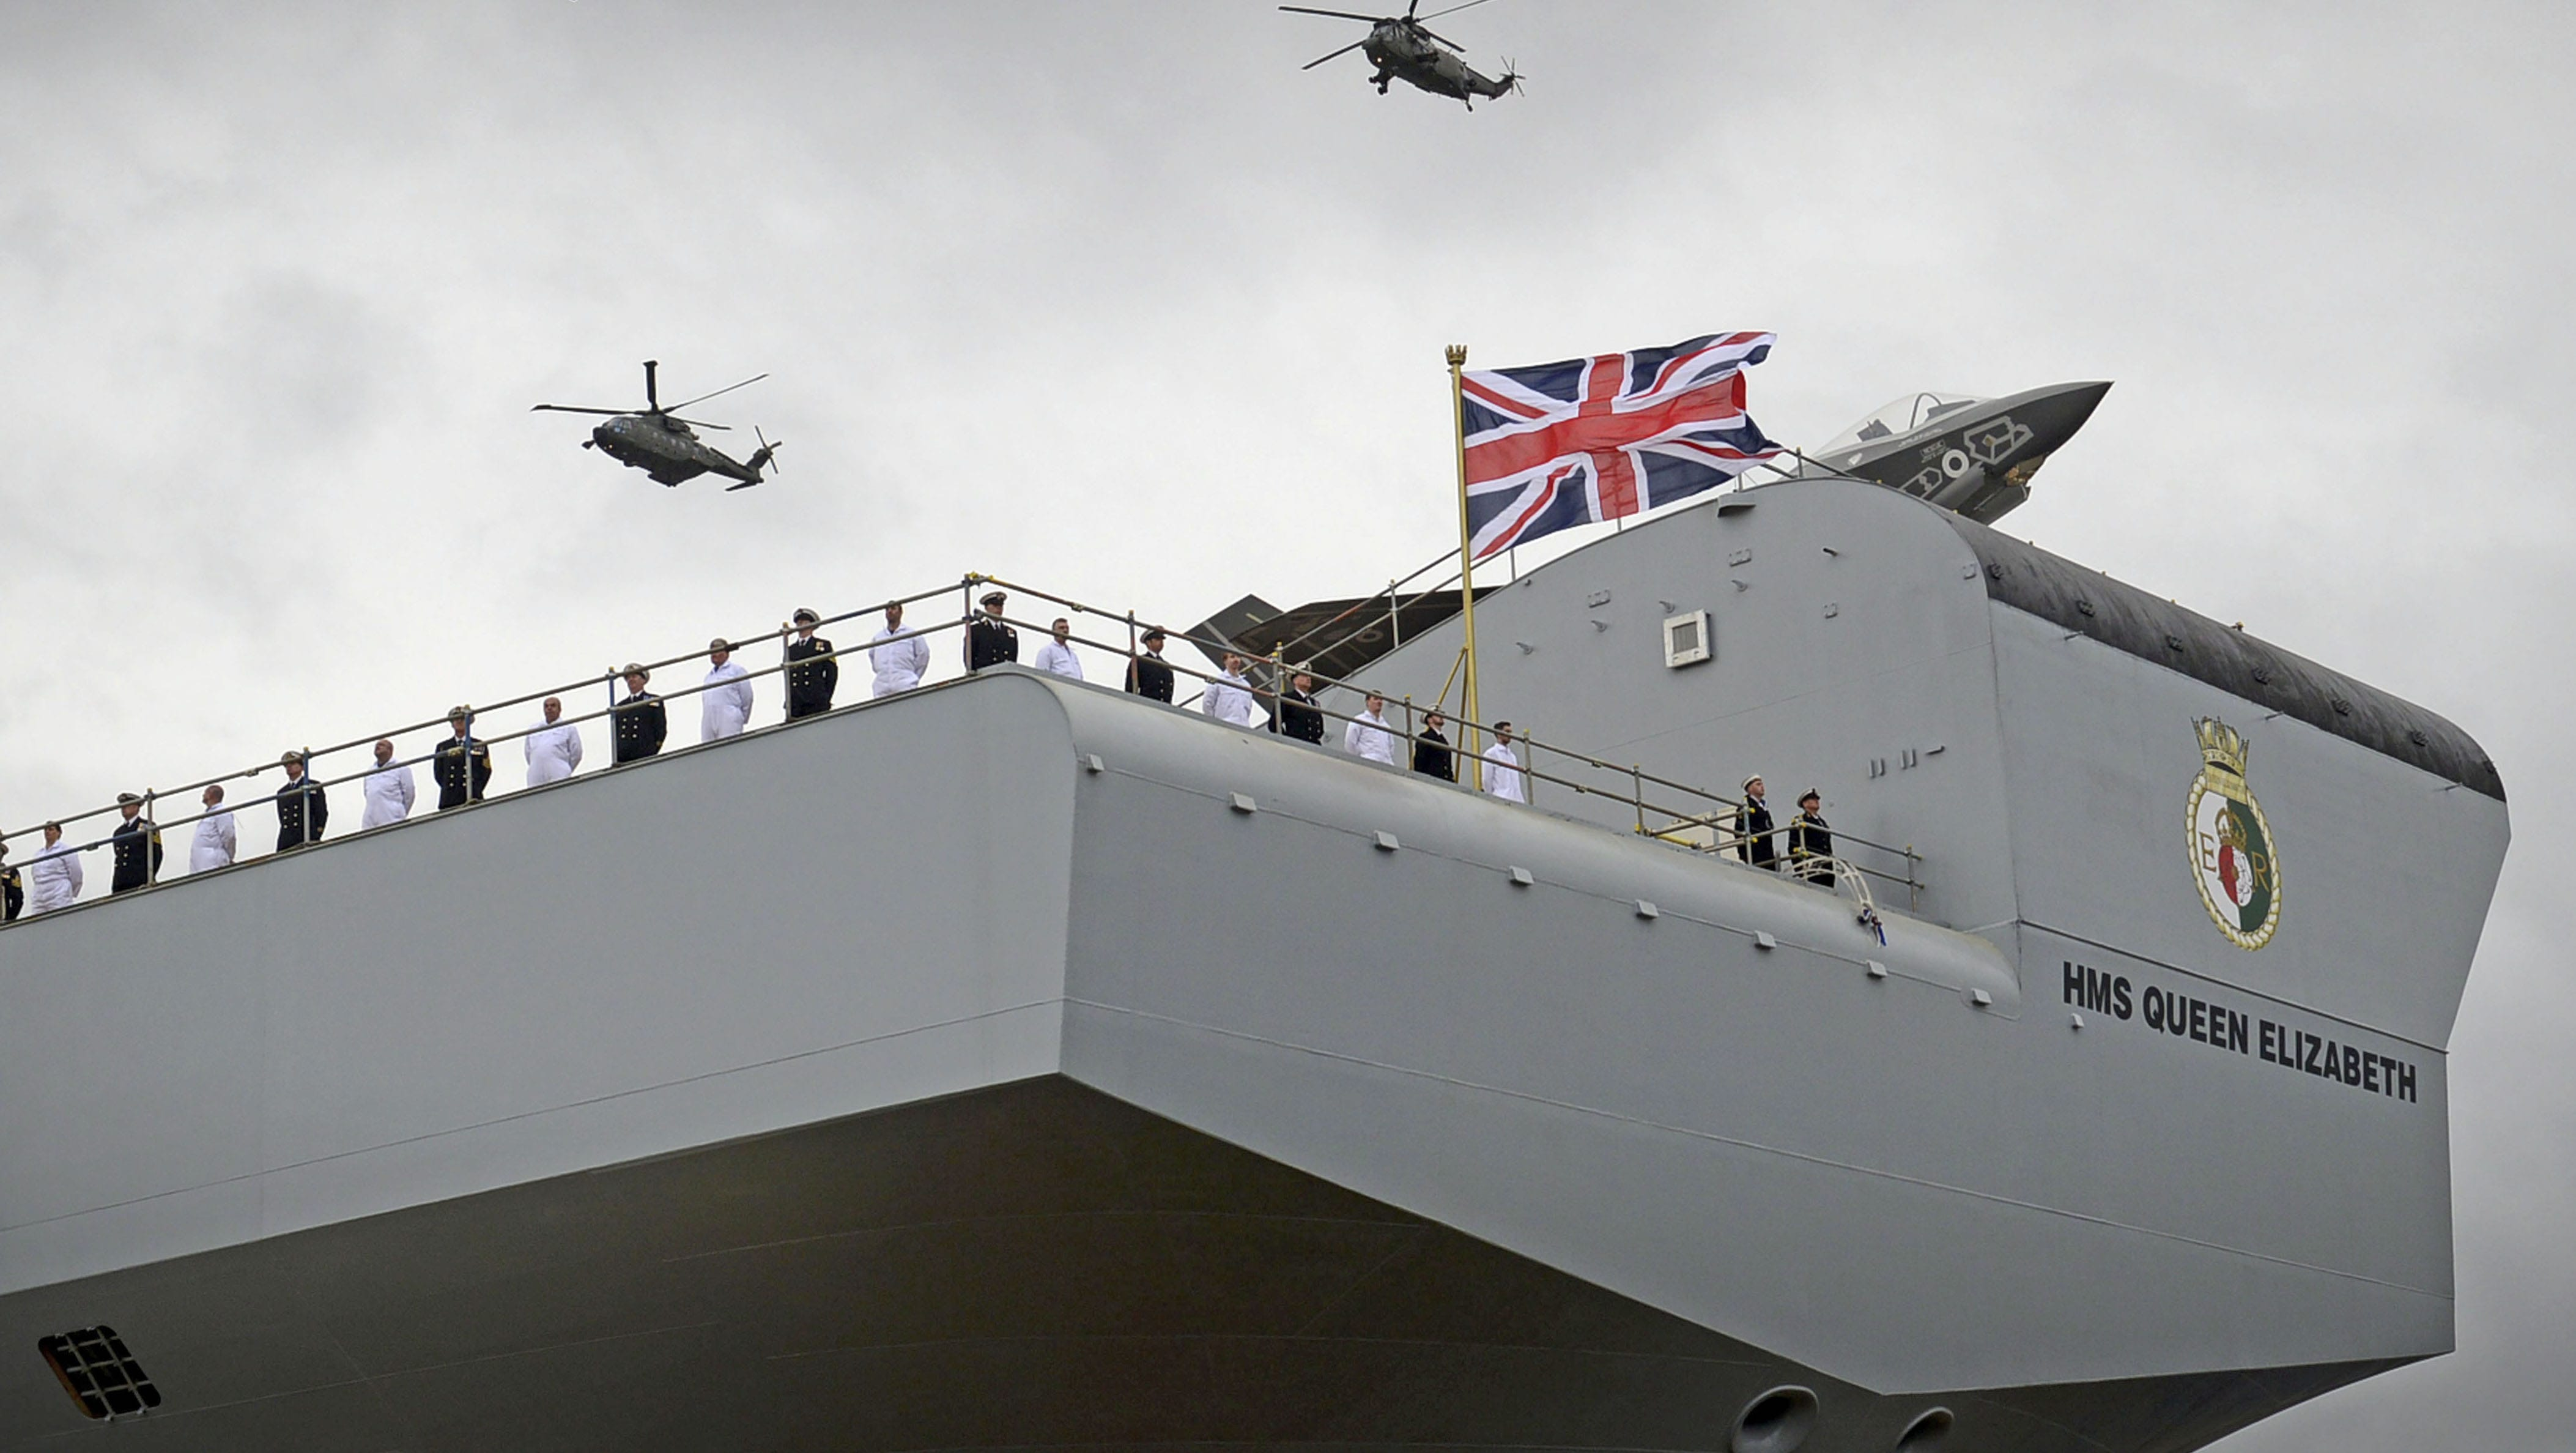 The naming ceremony for Britain's aircraft carrier HMS Queen Elizabeth (Photo: Ministry of Defence, UK)